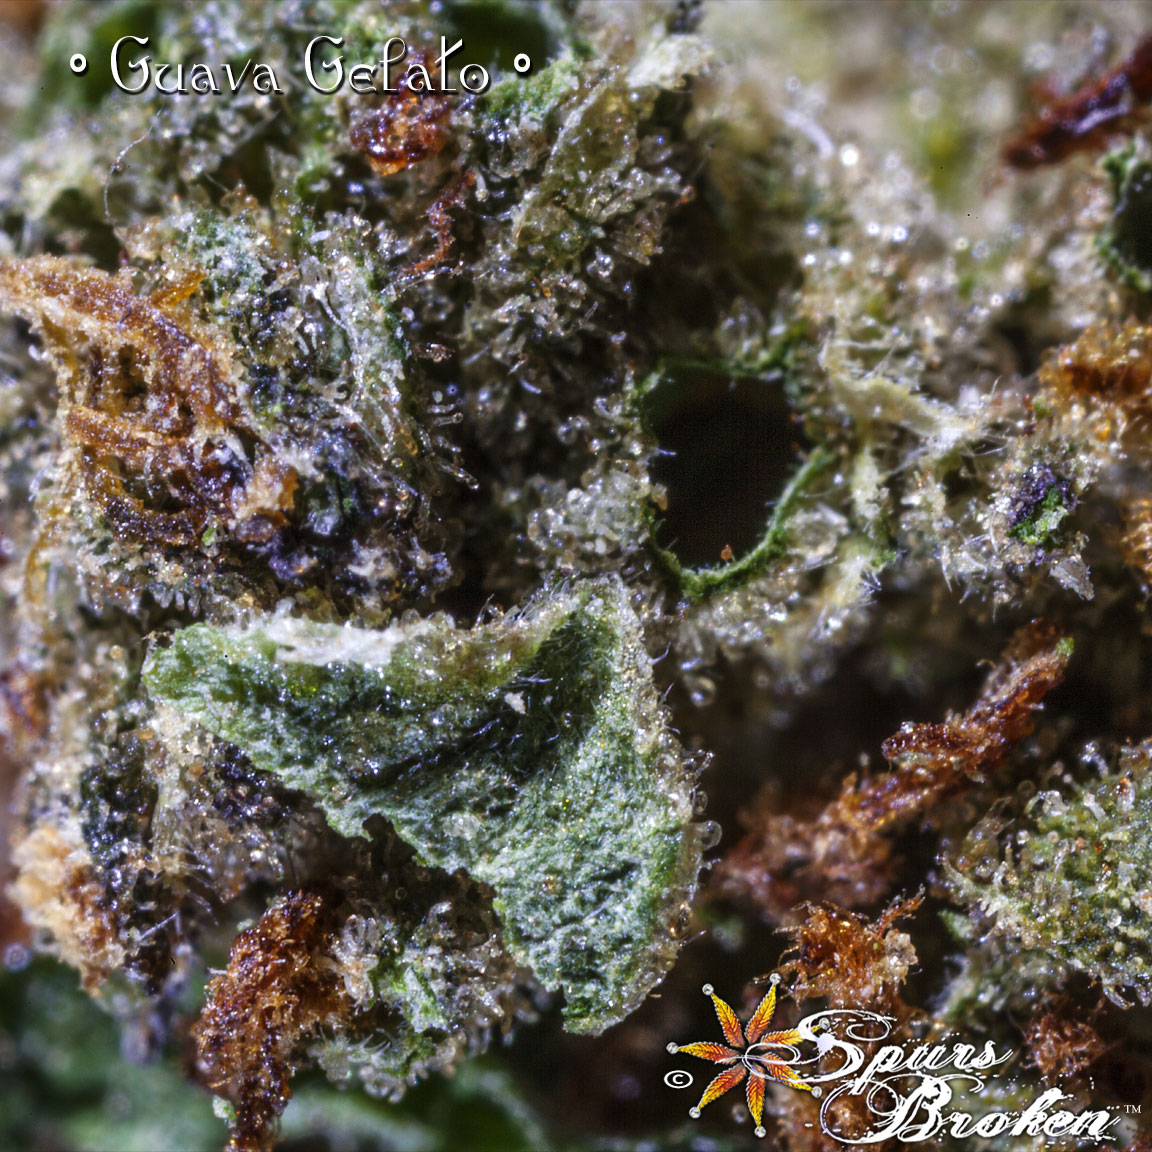 Guava Gelato -Cannabis Macro Photography by Spurs Broken (Robert R. Sanders)